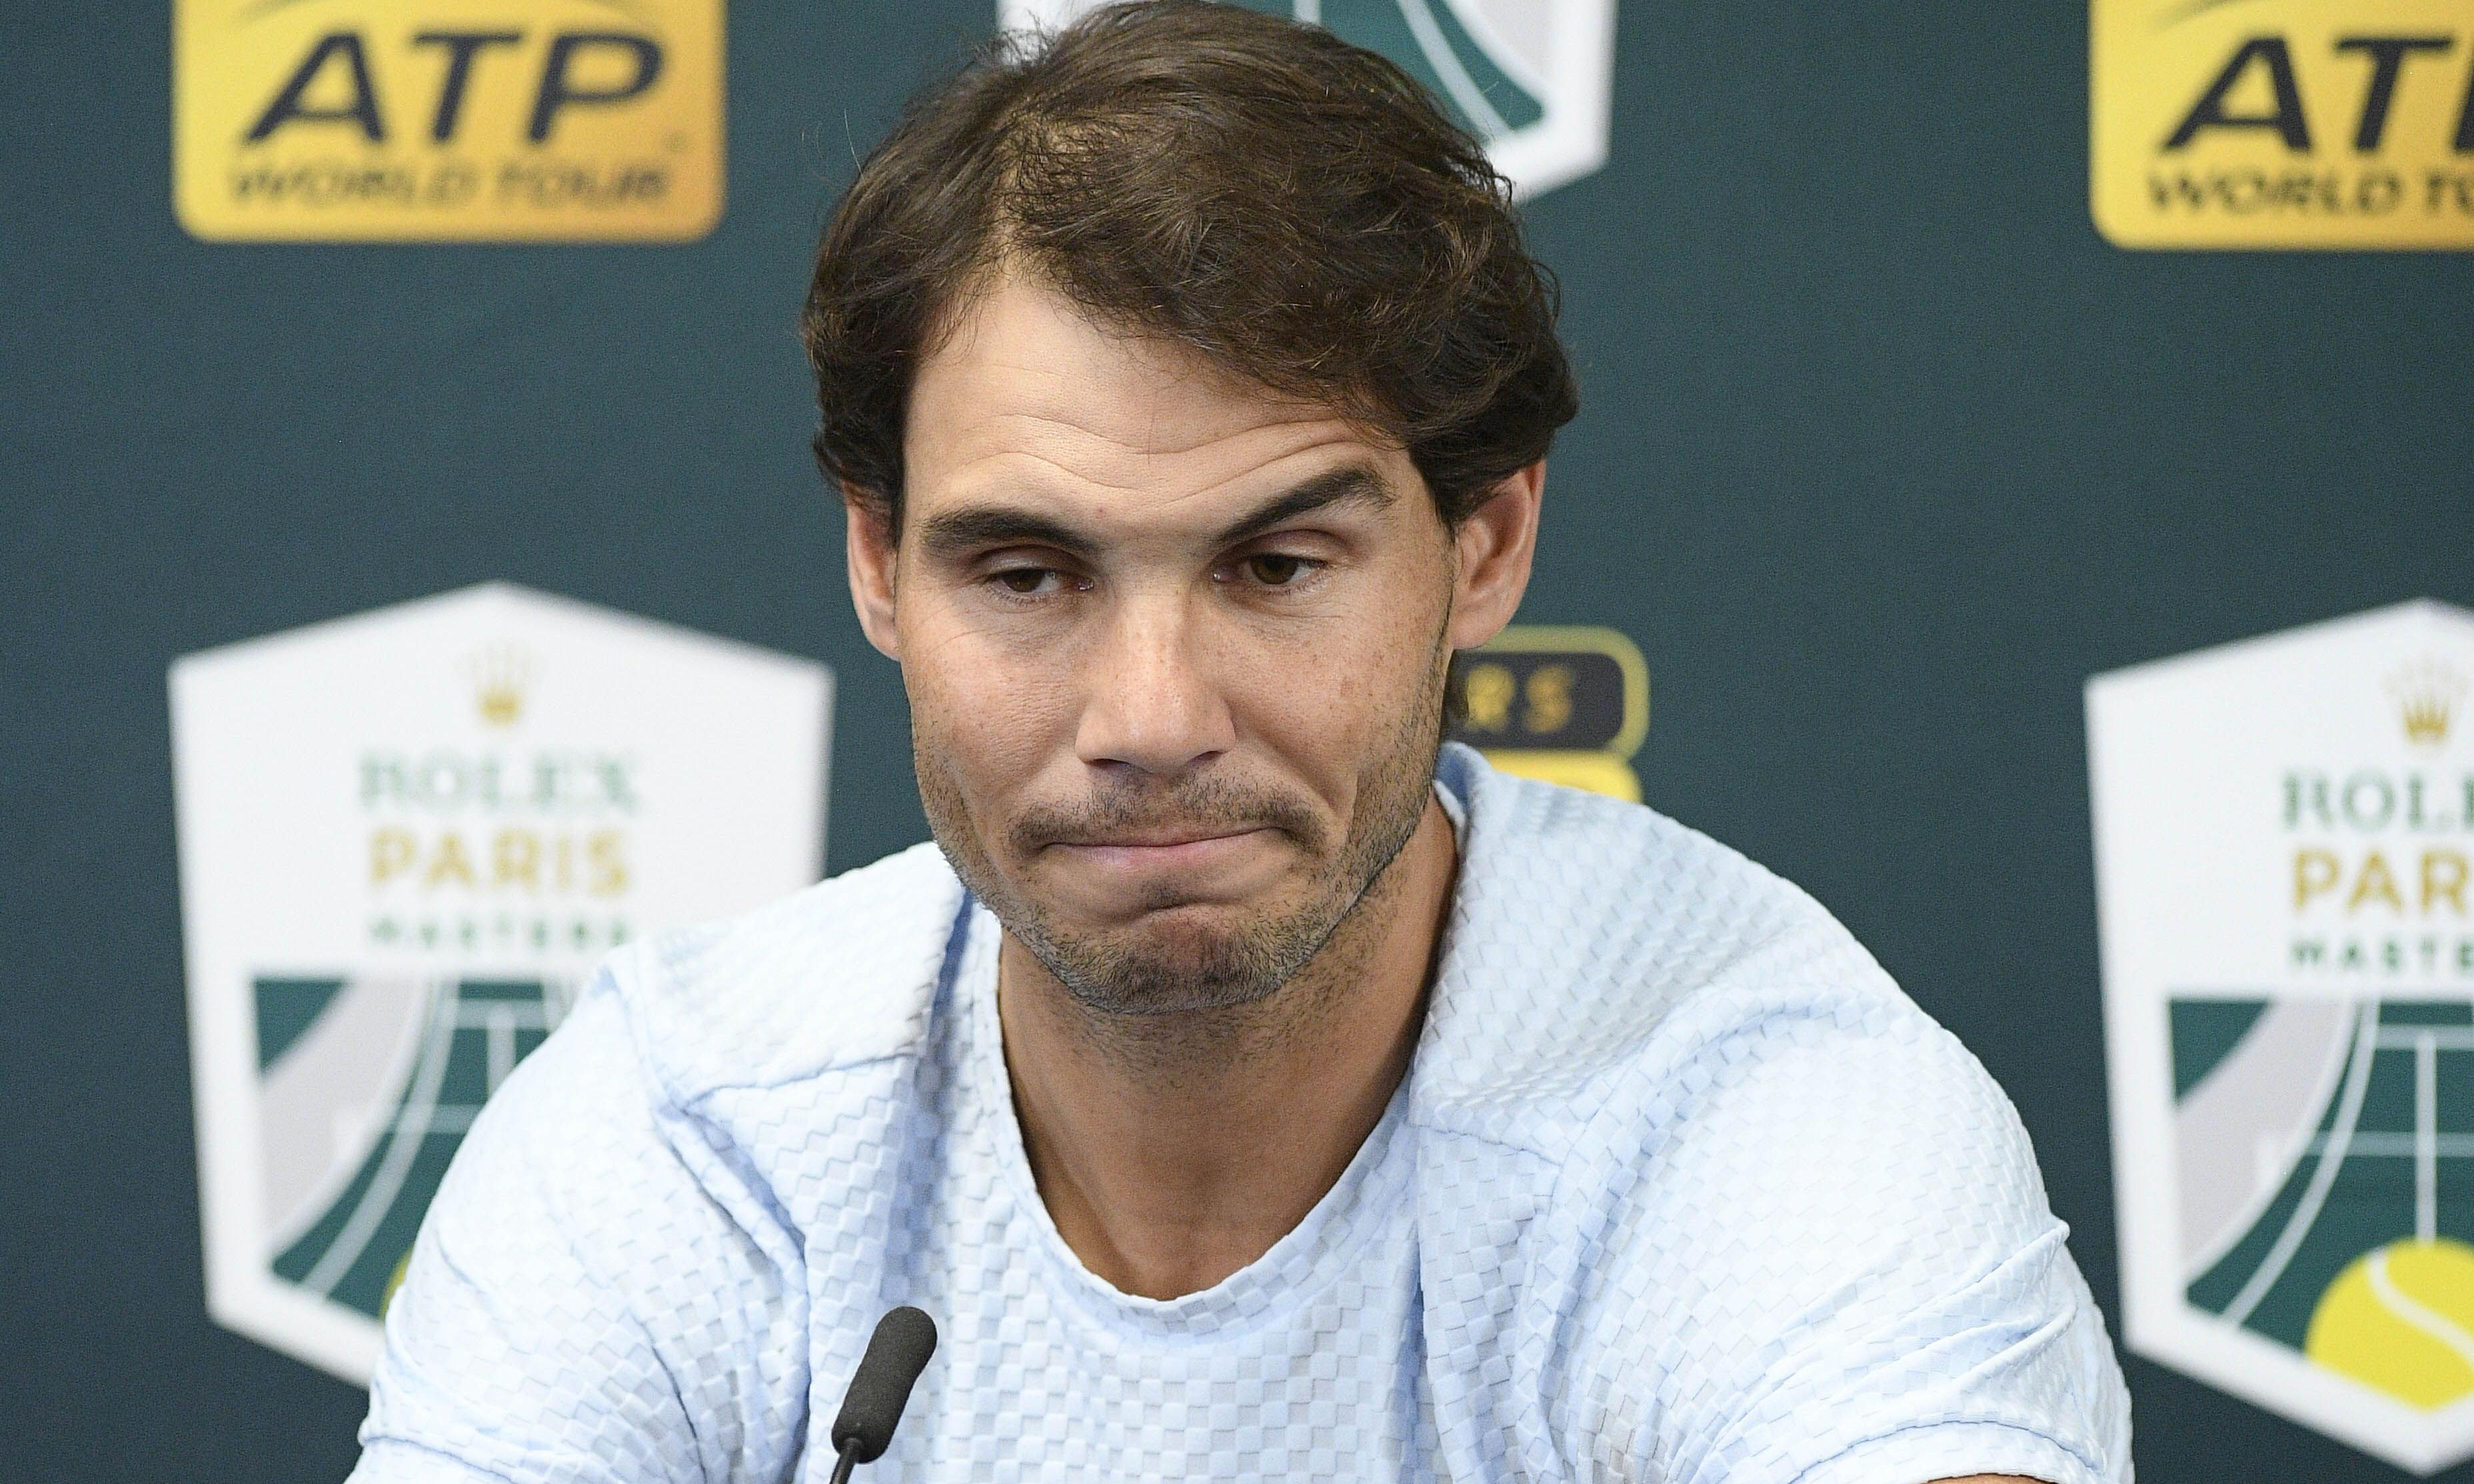 Rafael Nadal pulls out of ATP Finals and to undergo ankle surgery